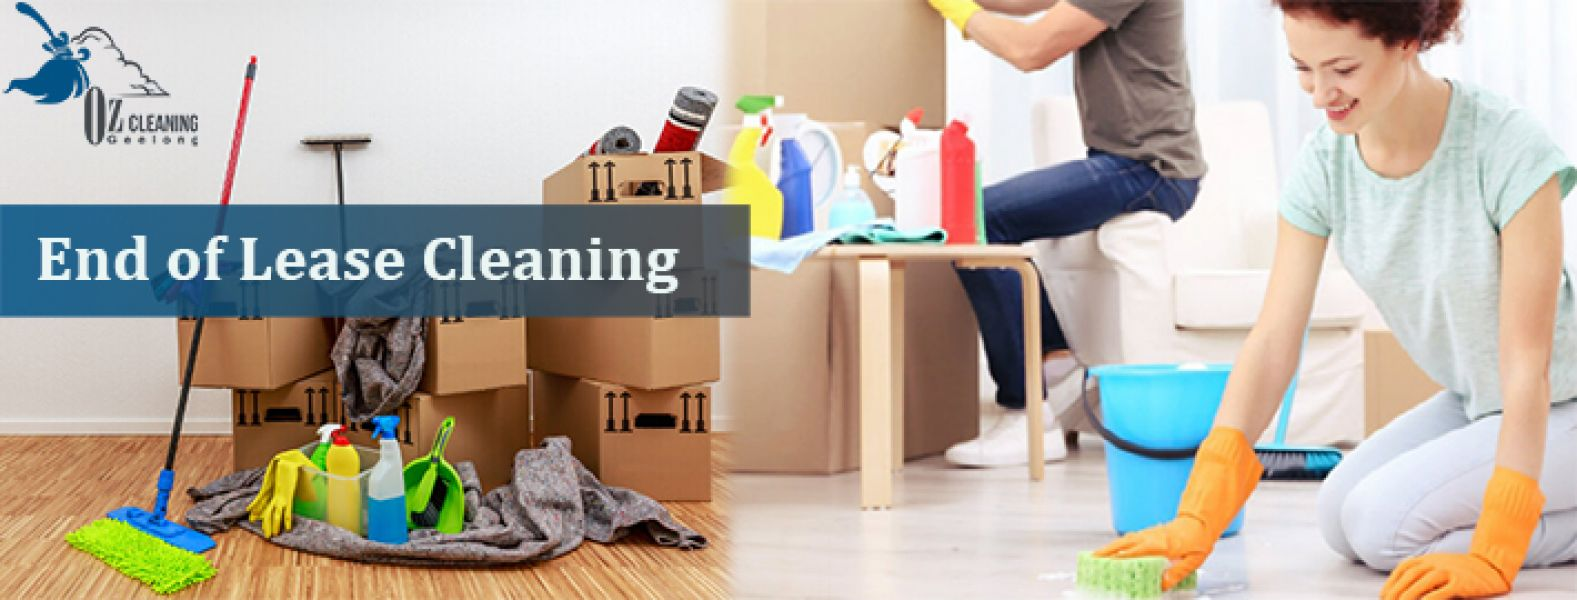 End of lease cleaning - Carpet Cleanning Geelong